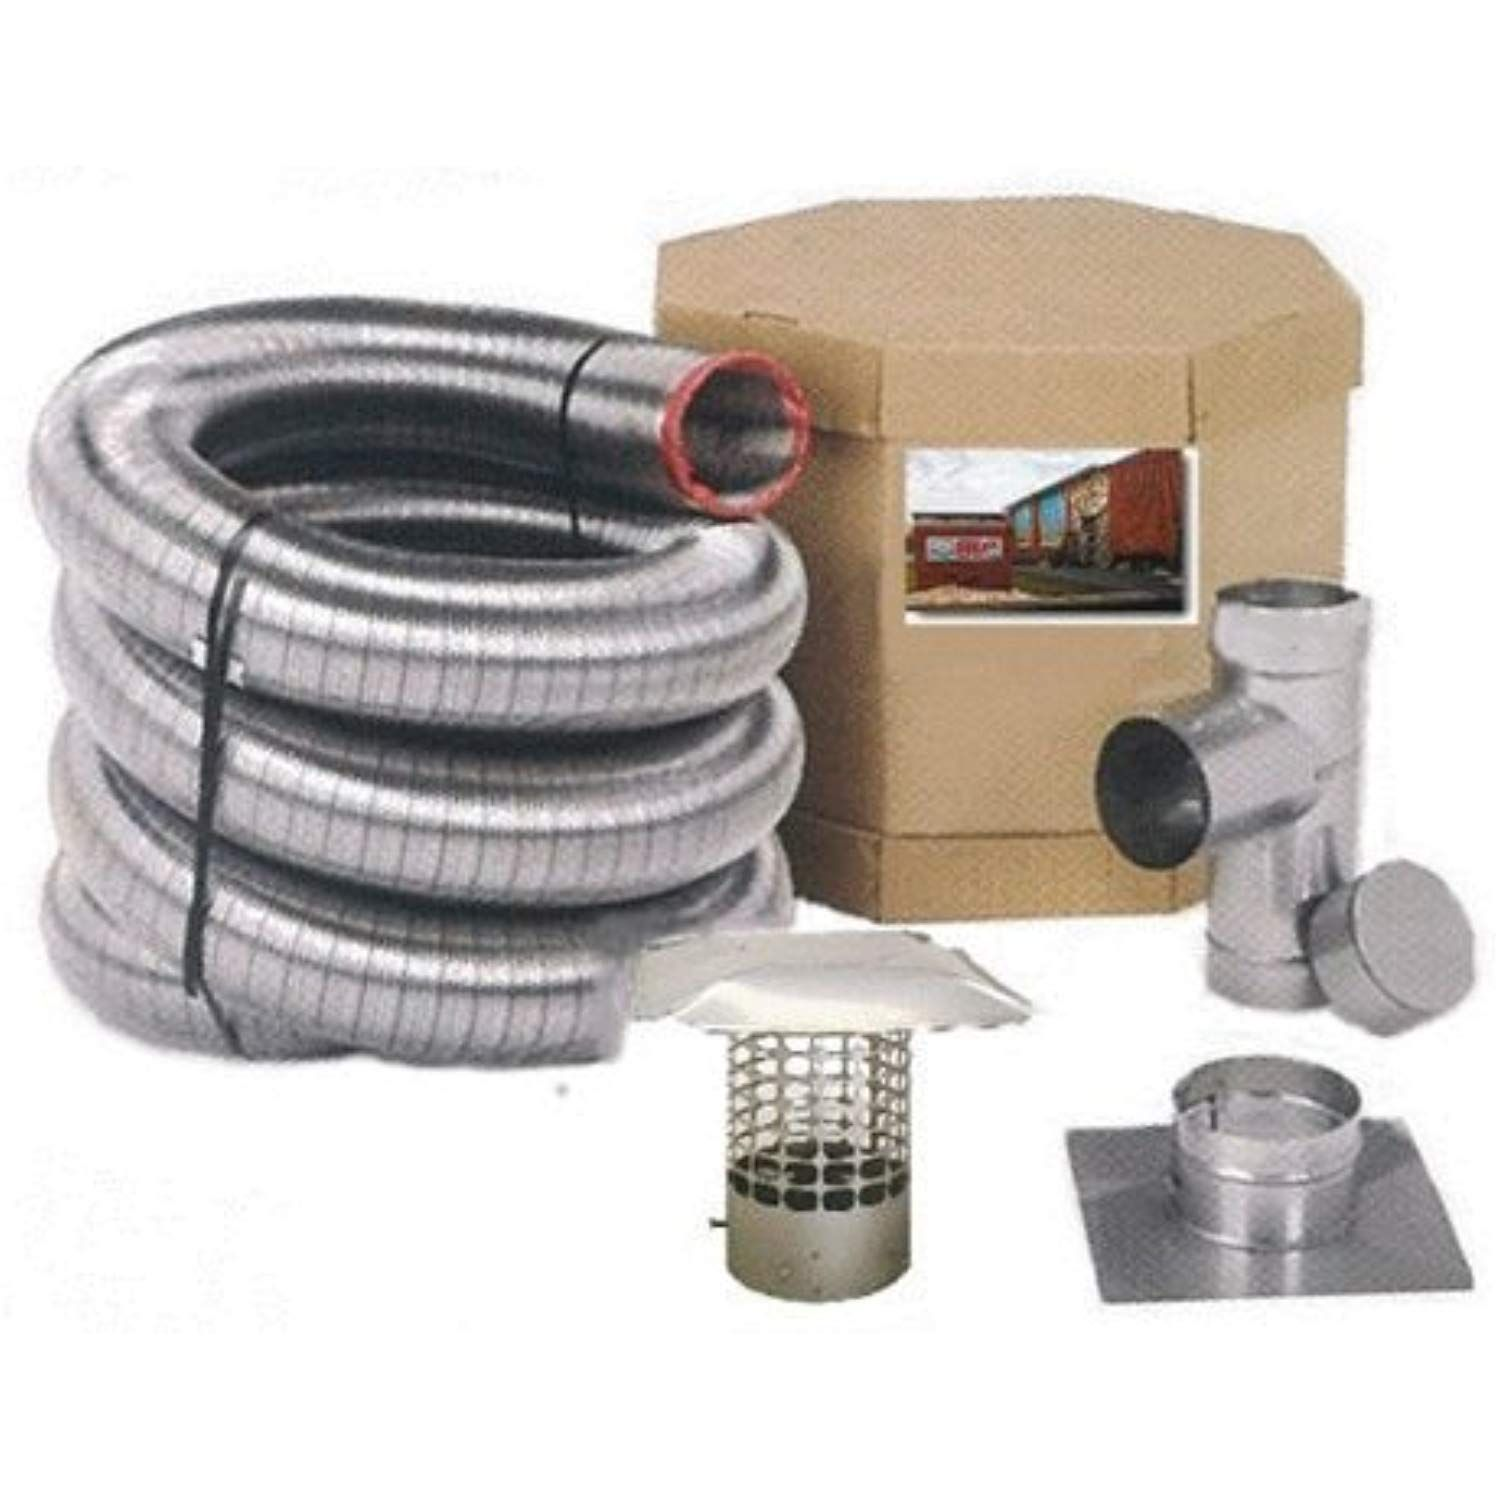 Forever Vent Sw5540ssk Smoothwall Double Ply Stainless Steel Chimney Liner Kit 5 5 Inch X 40 Feet Smooth Walls Stainless Steel